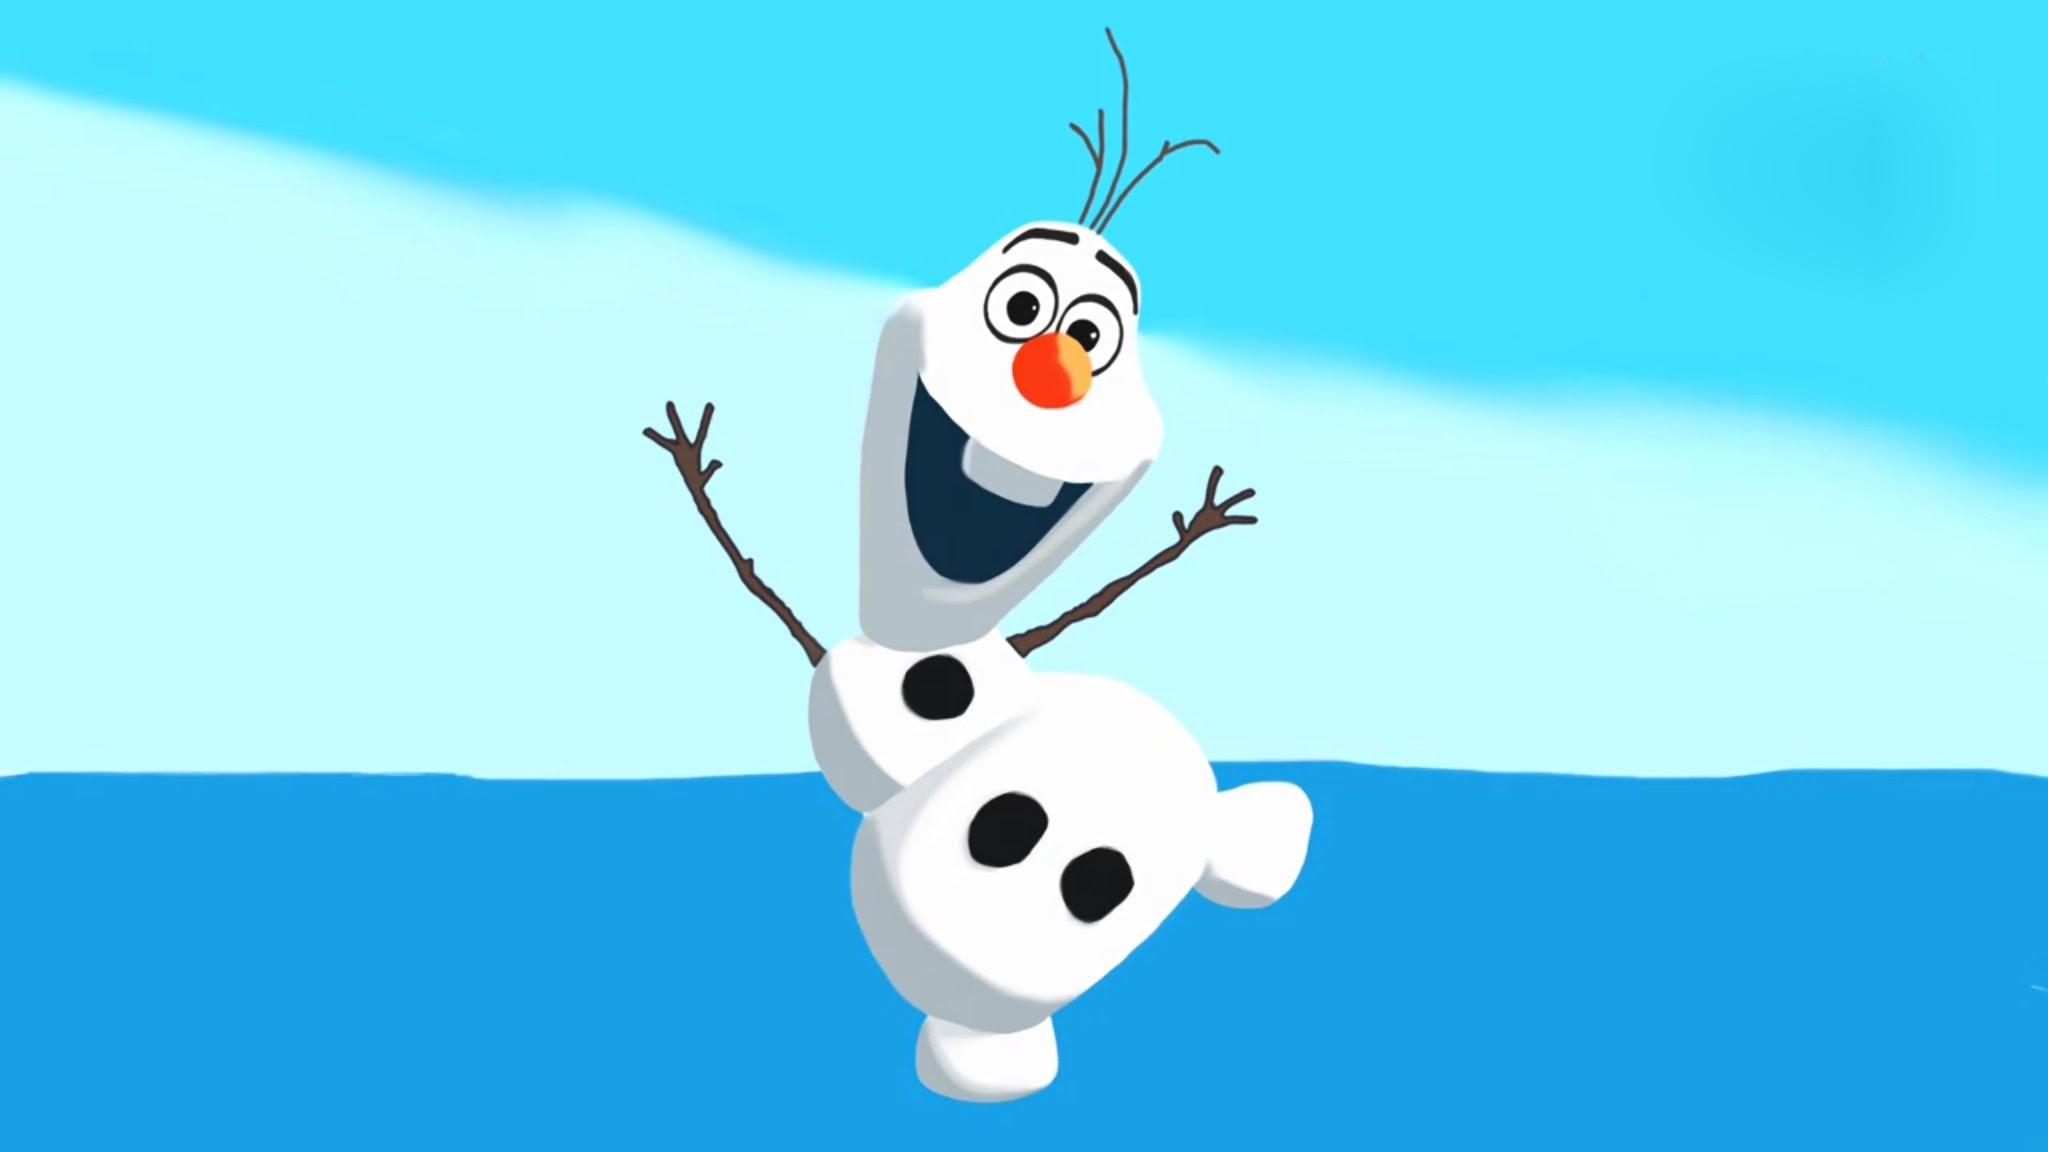 Cute Olaf Wallpapers 2048x1152